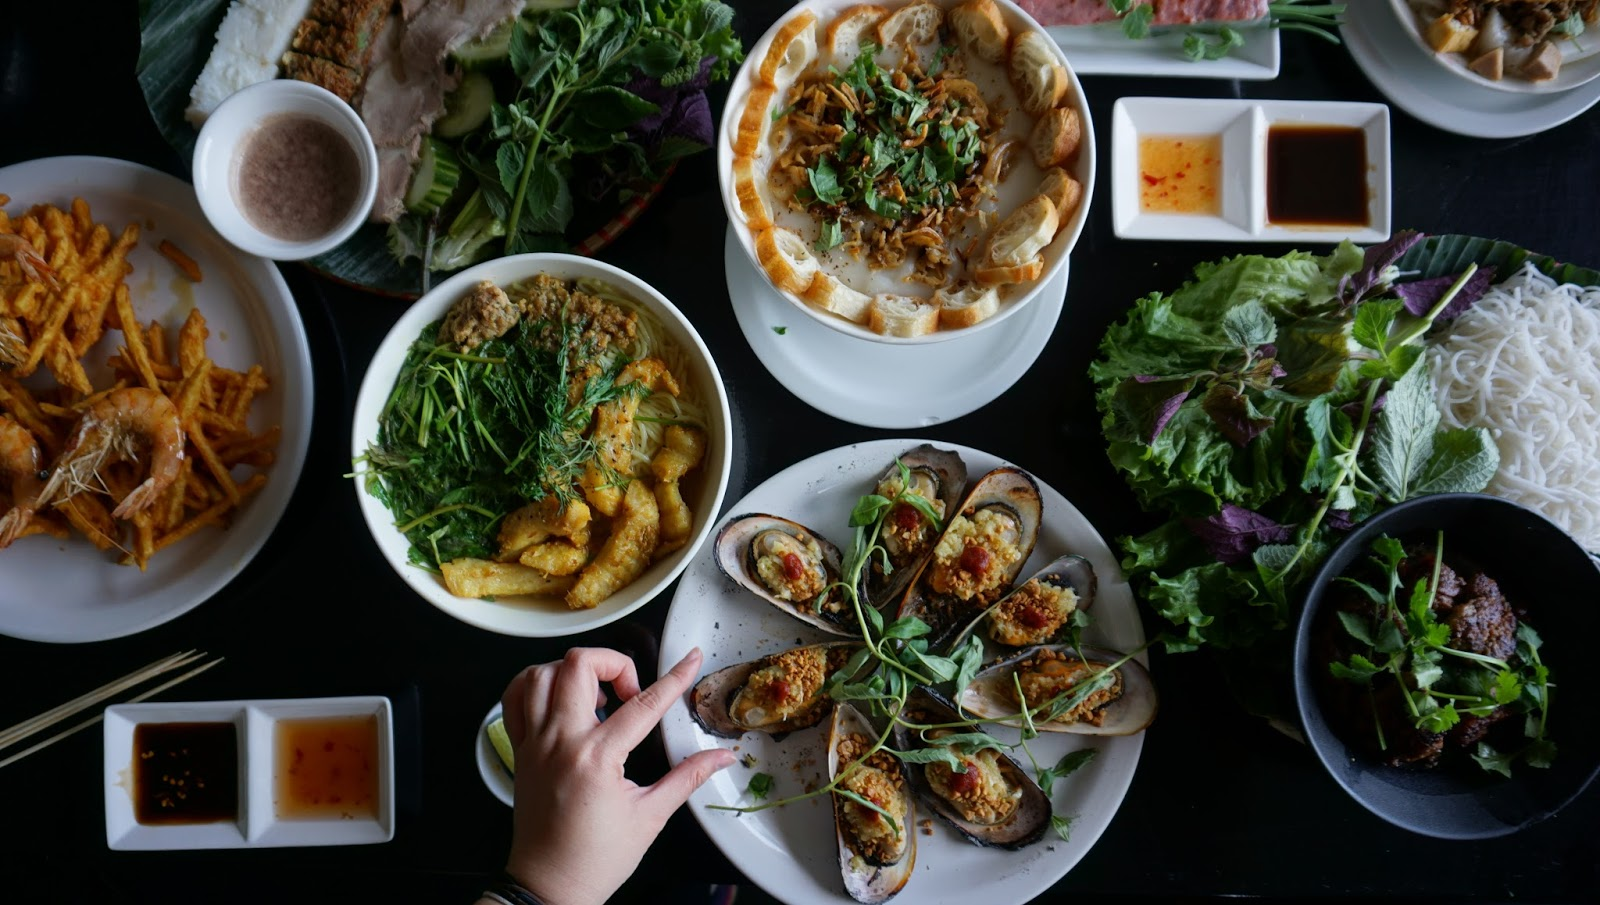 Ha Noi Corner Is The Go-To Spot For Authentic Northern Vietnamese Cuisine (Giveaway)